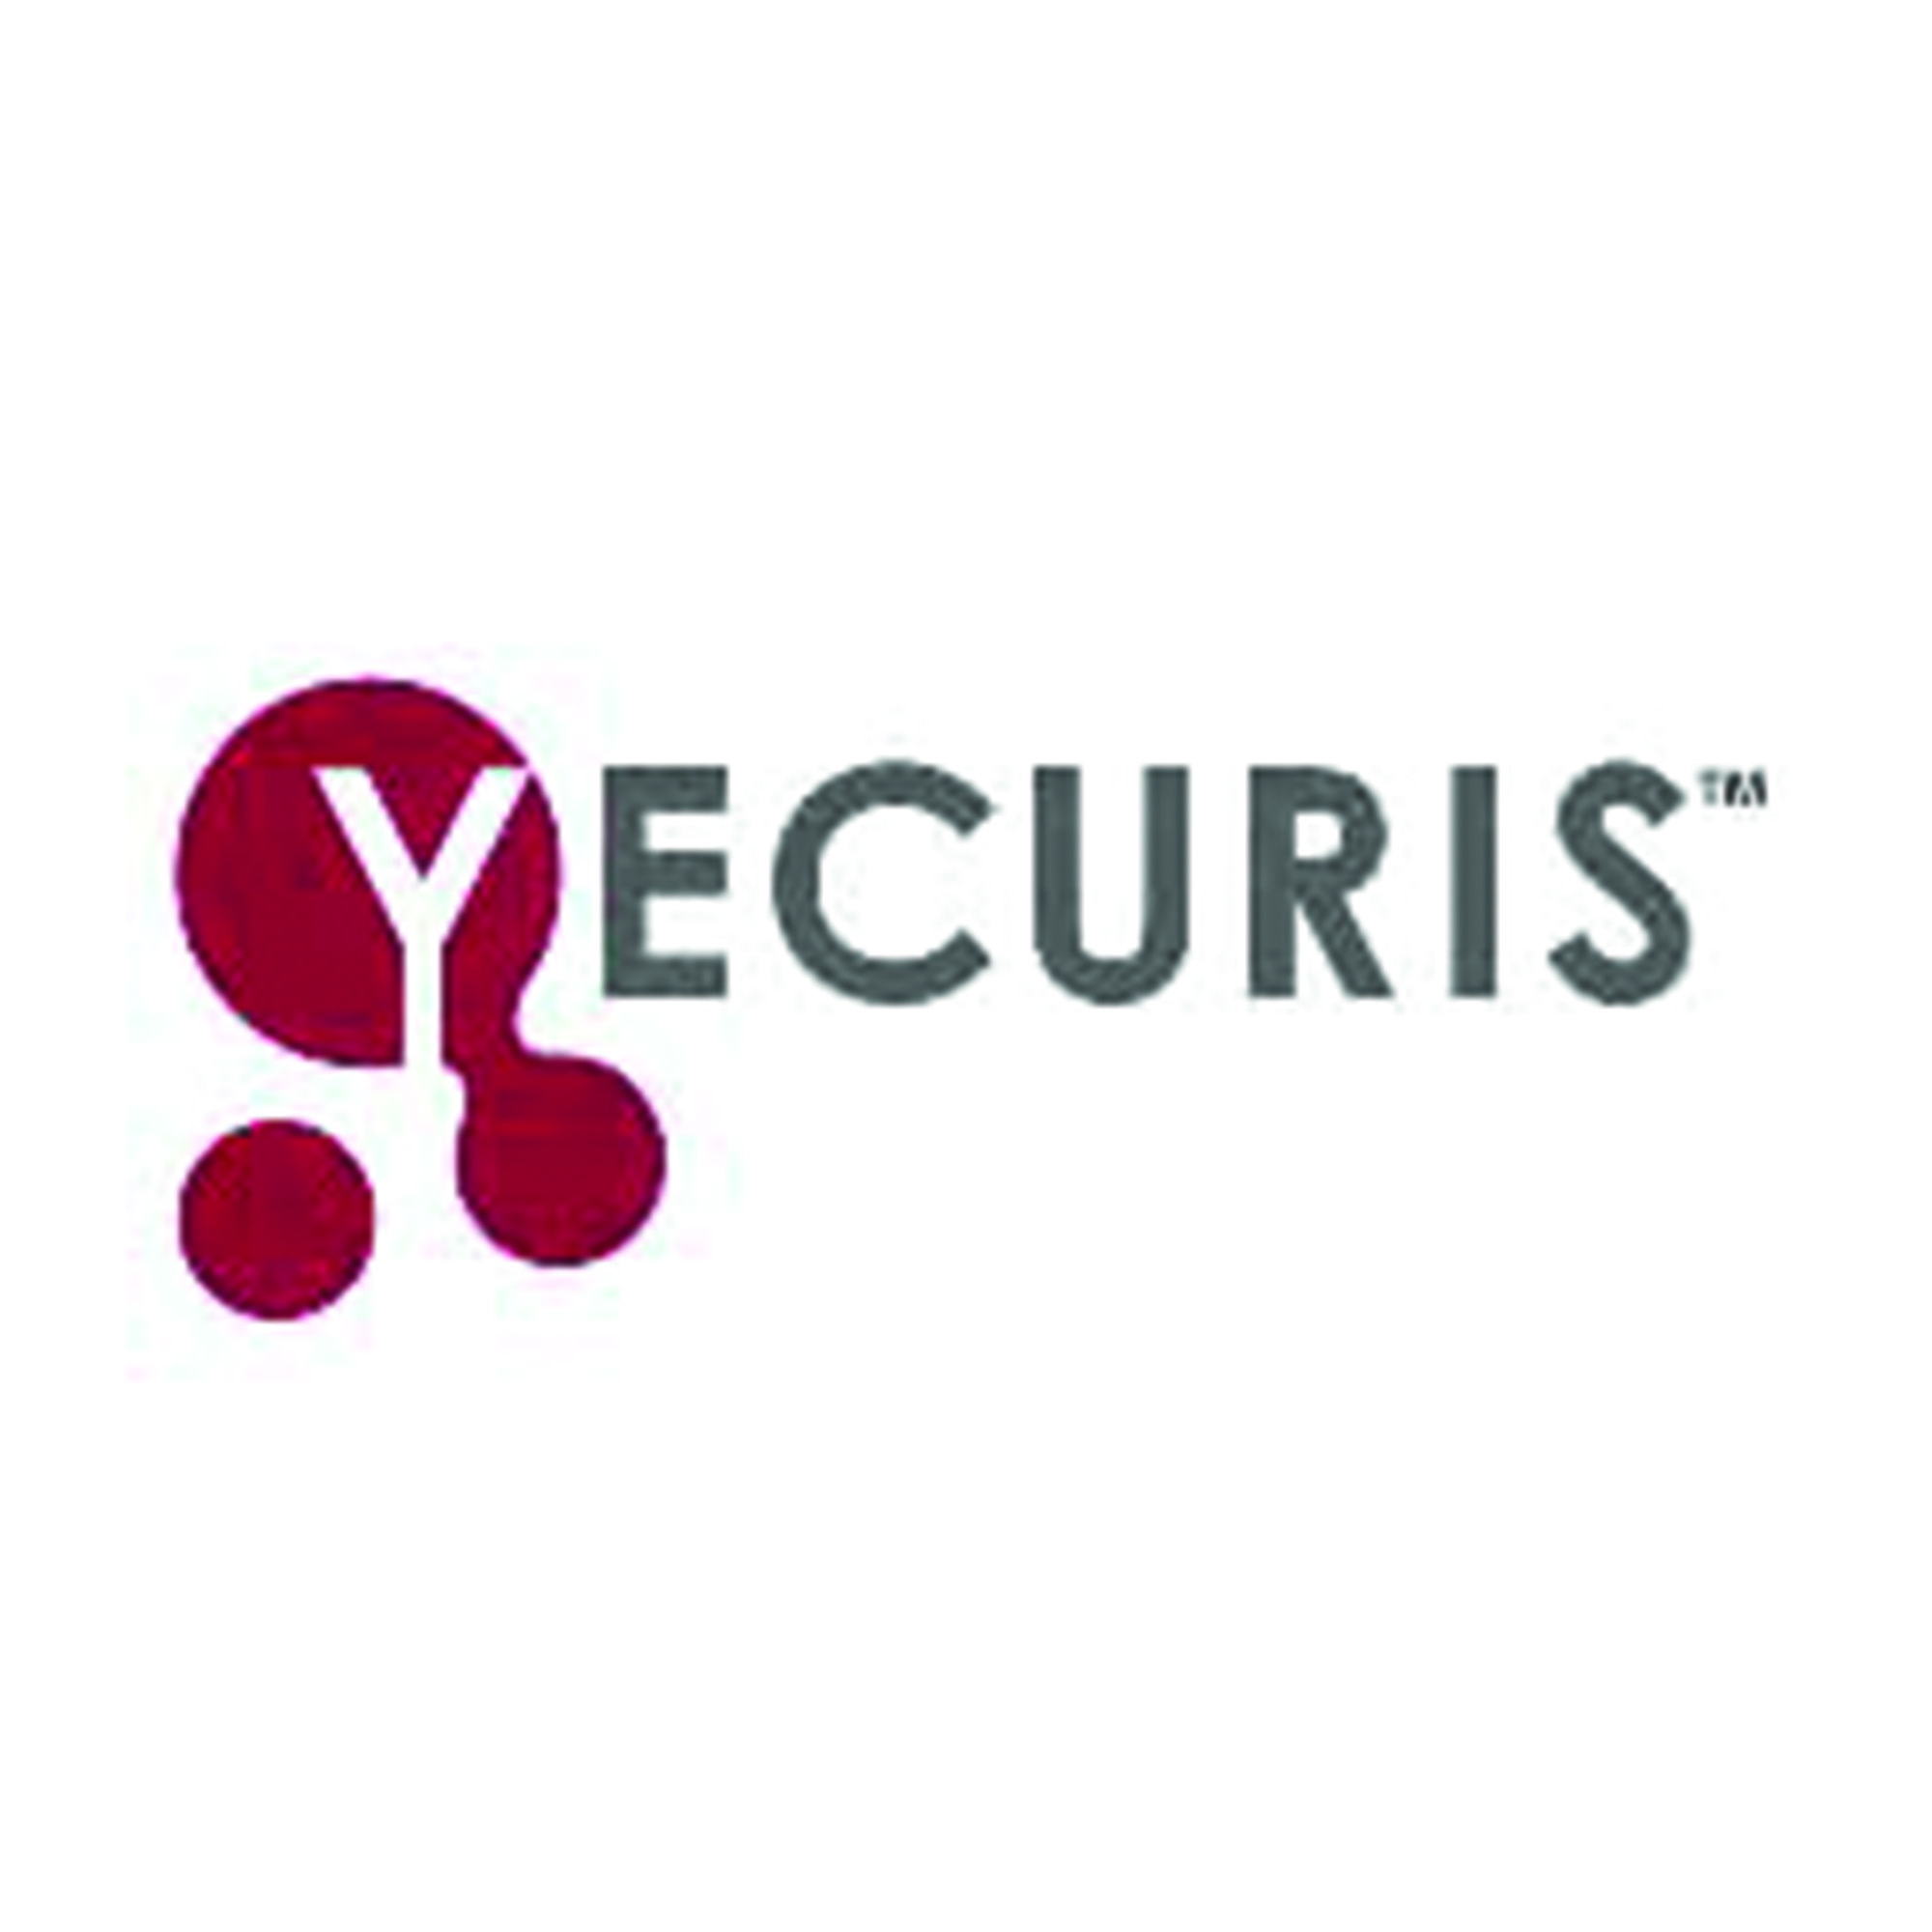 Yecuris logo